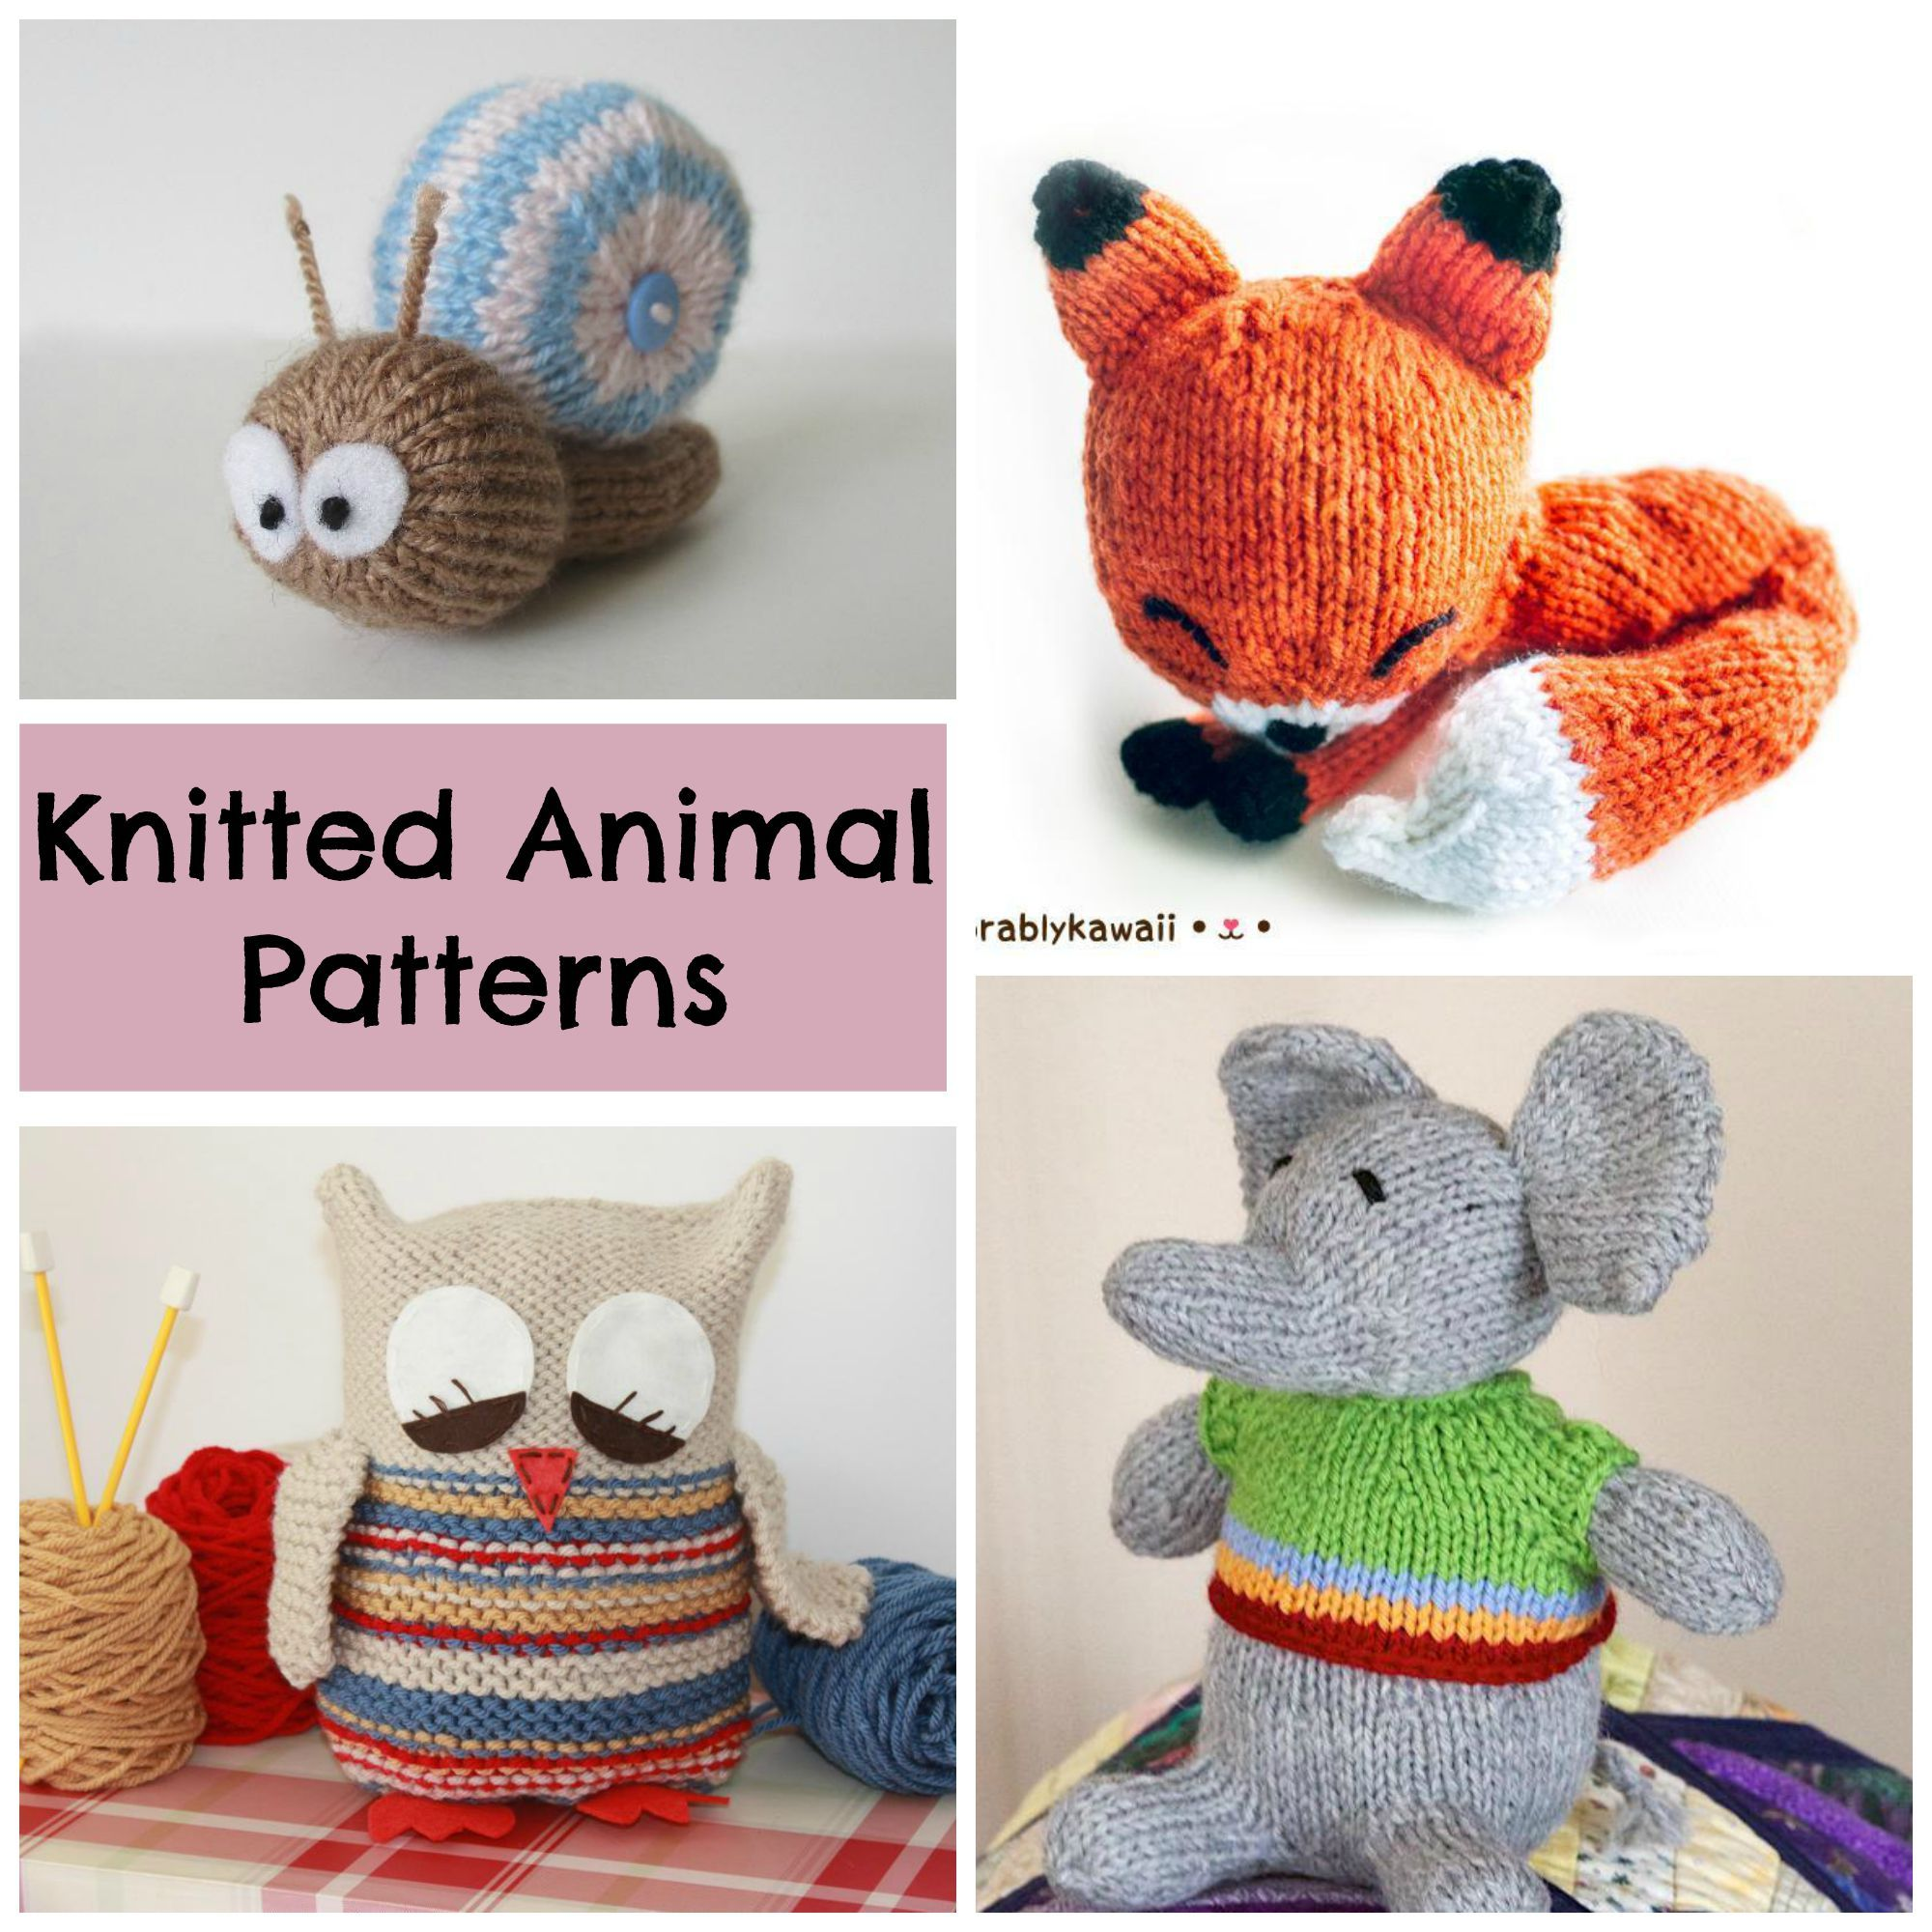 Bring On the Cuddles! 7 Knitted Animals to Love | Cuddling, Knit ...